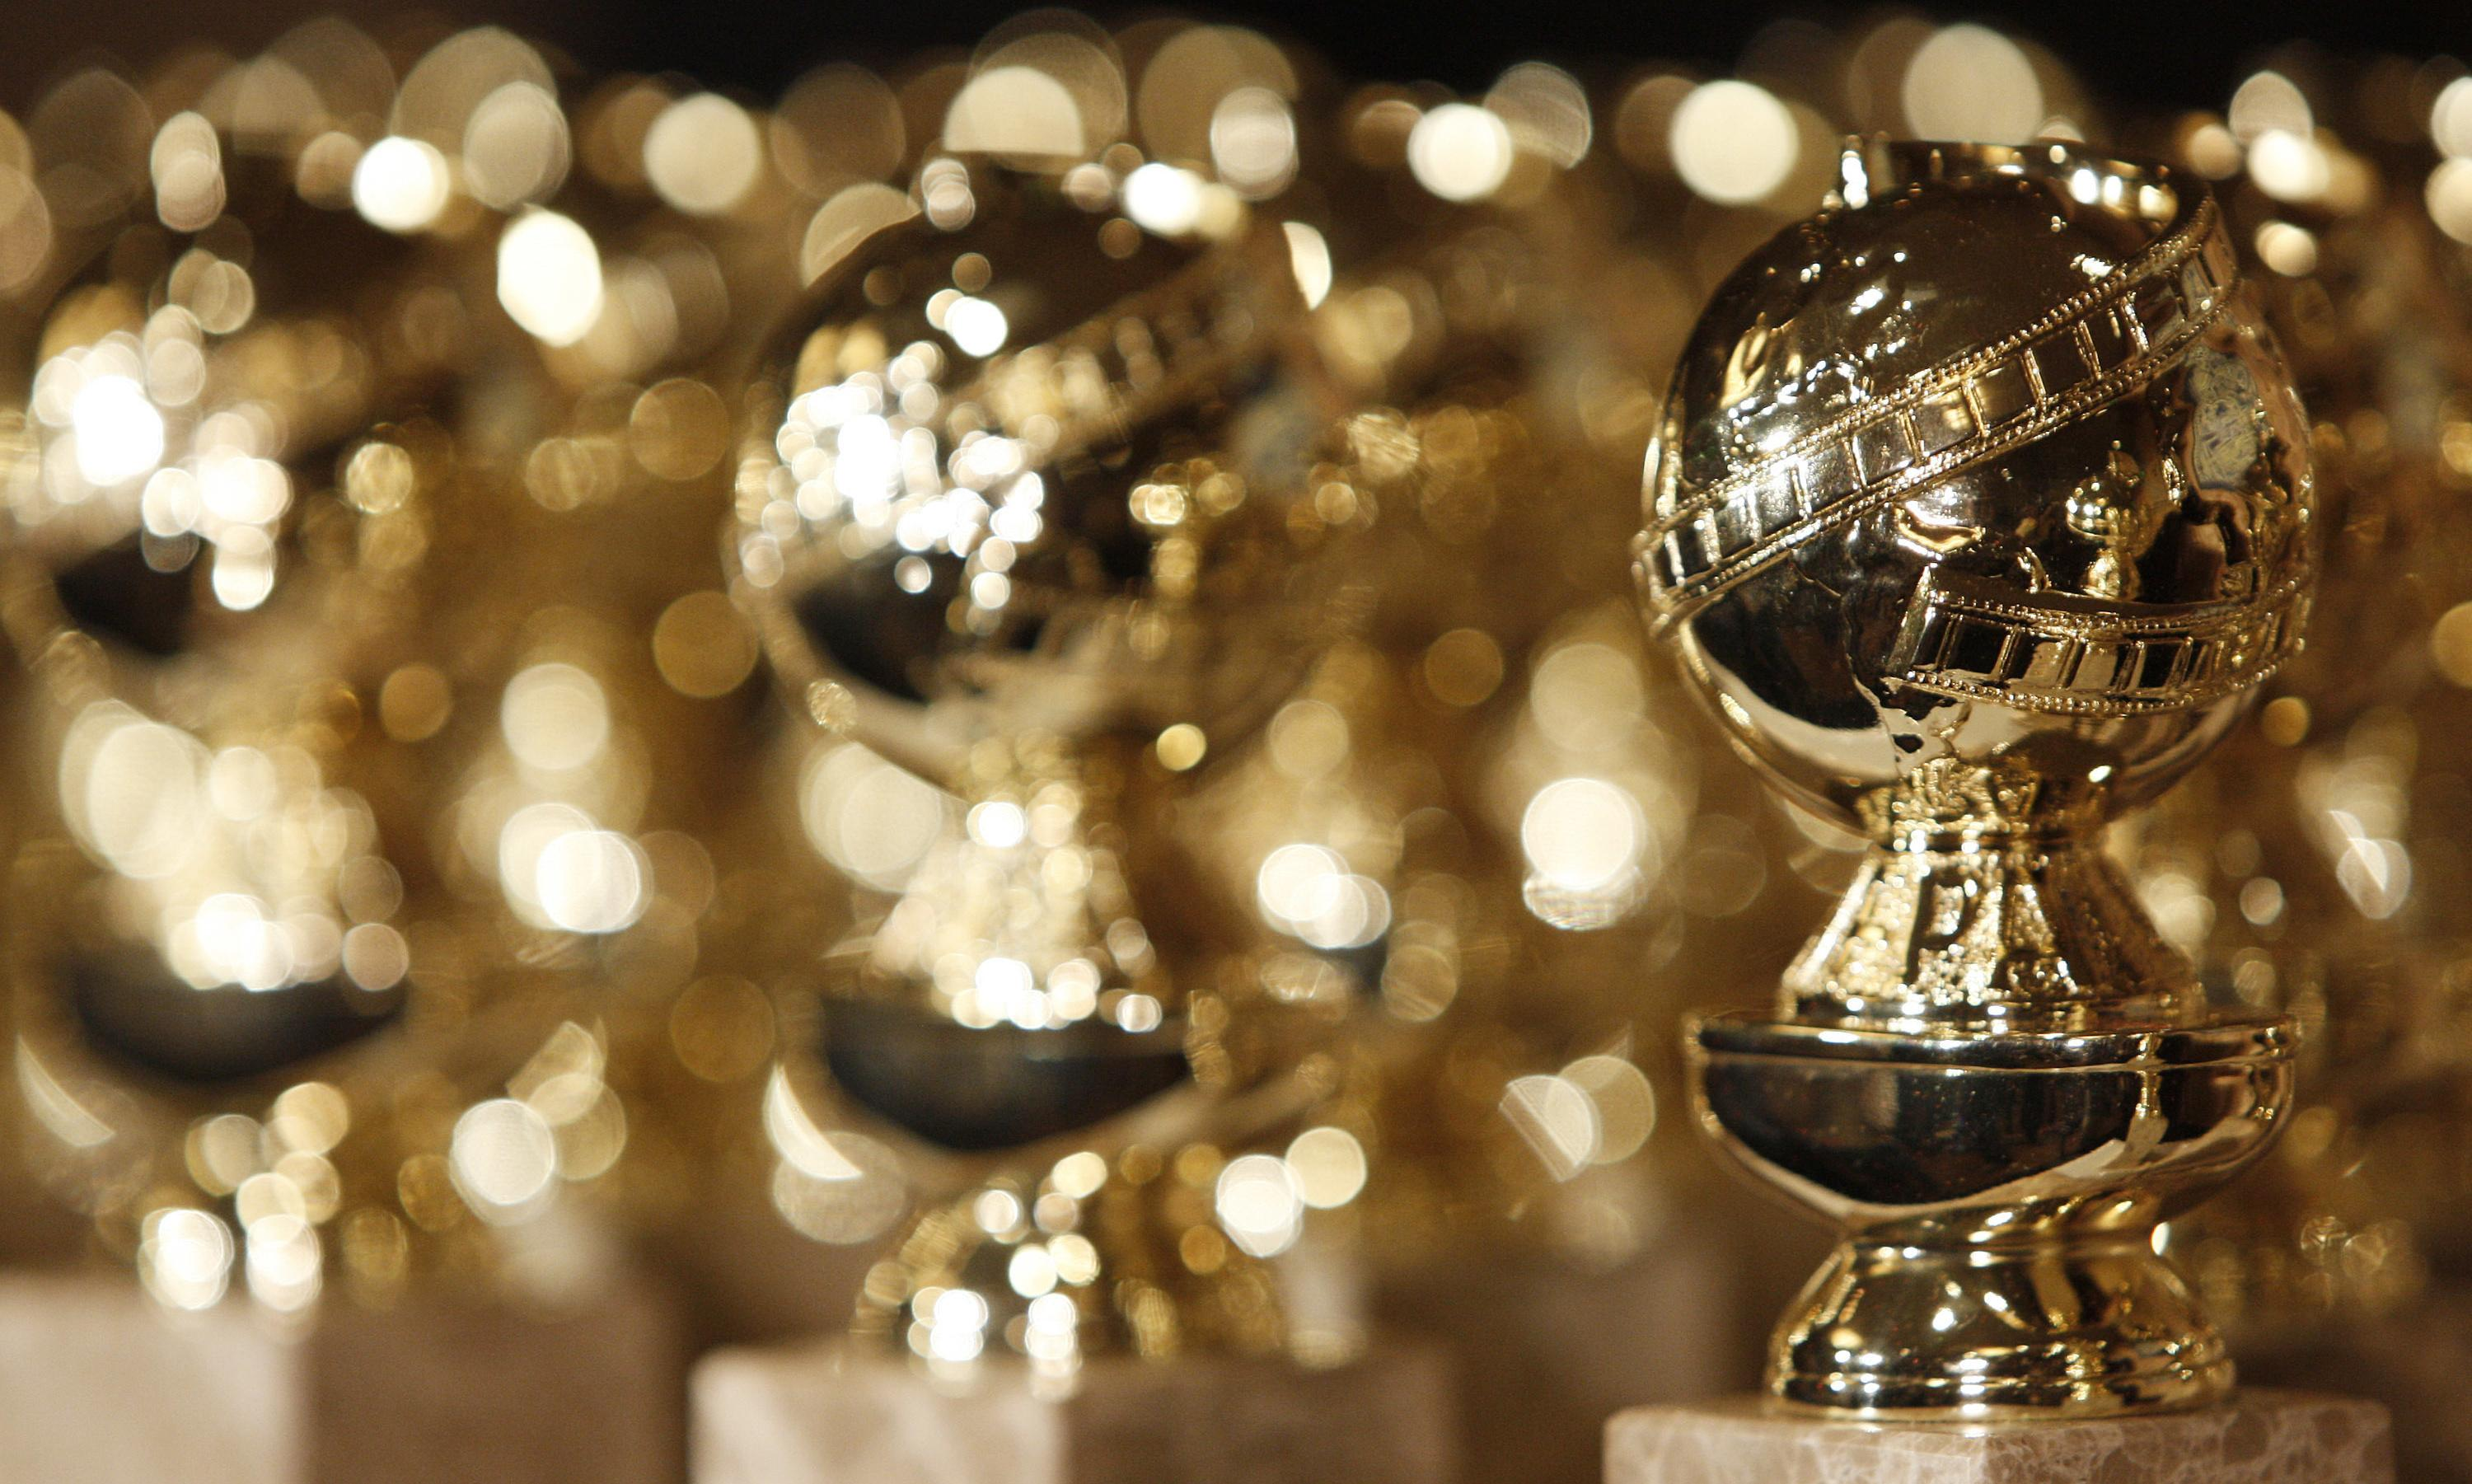 Golden Globes 2019 nominations: the full list